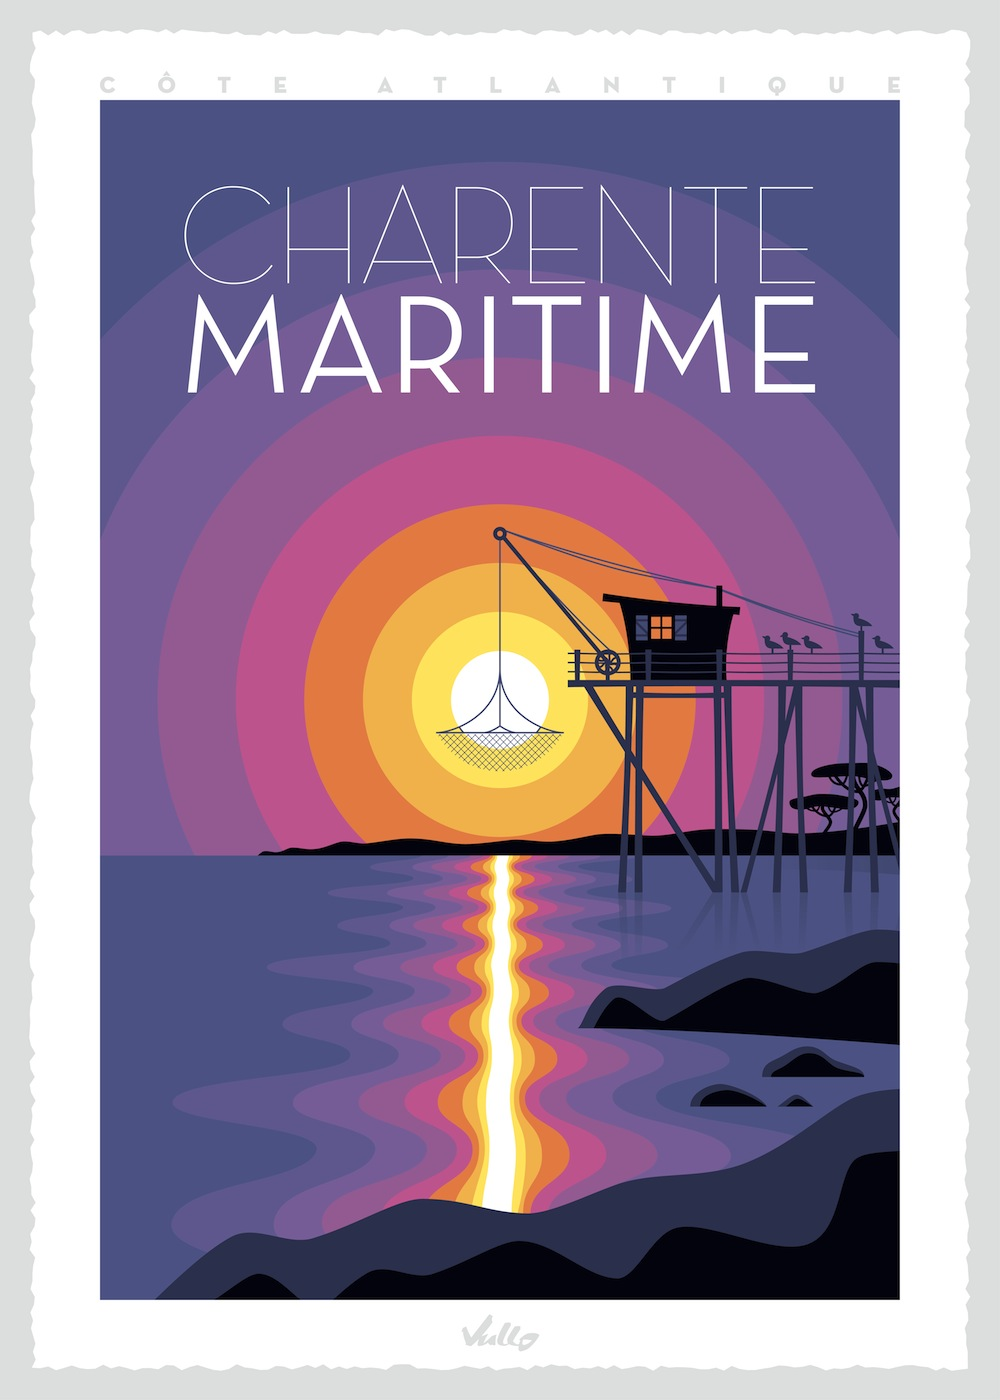 Charente Maritime poster